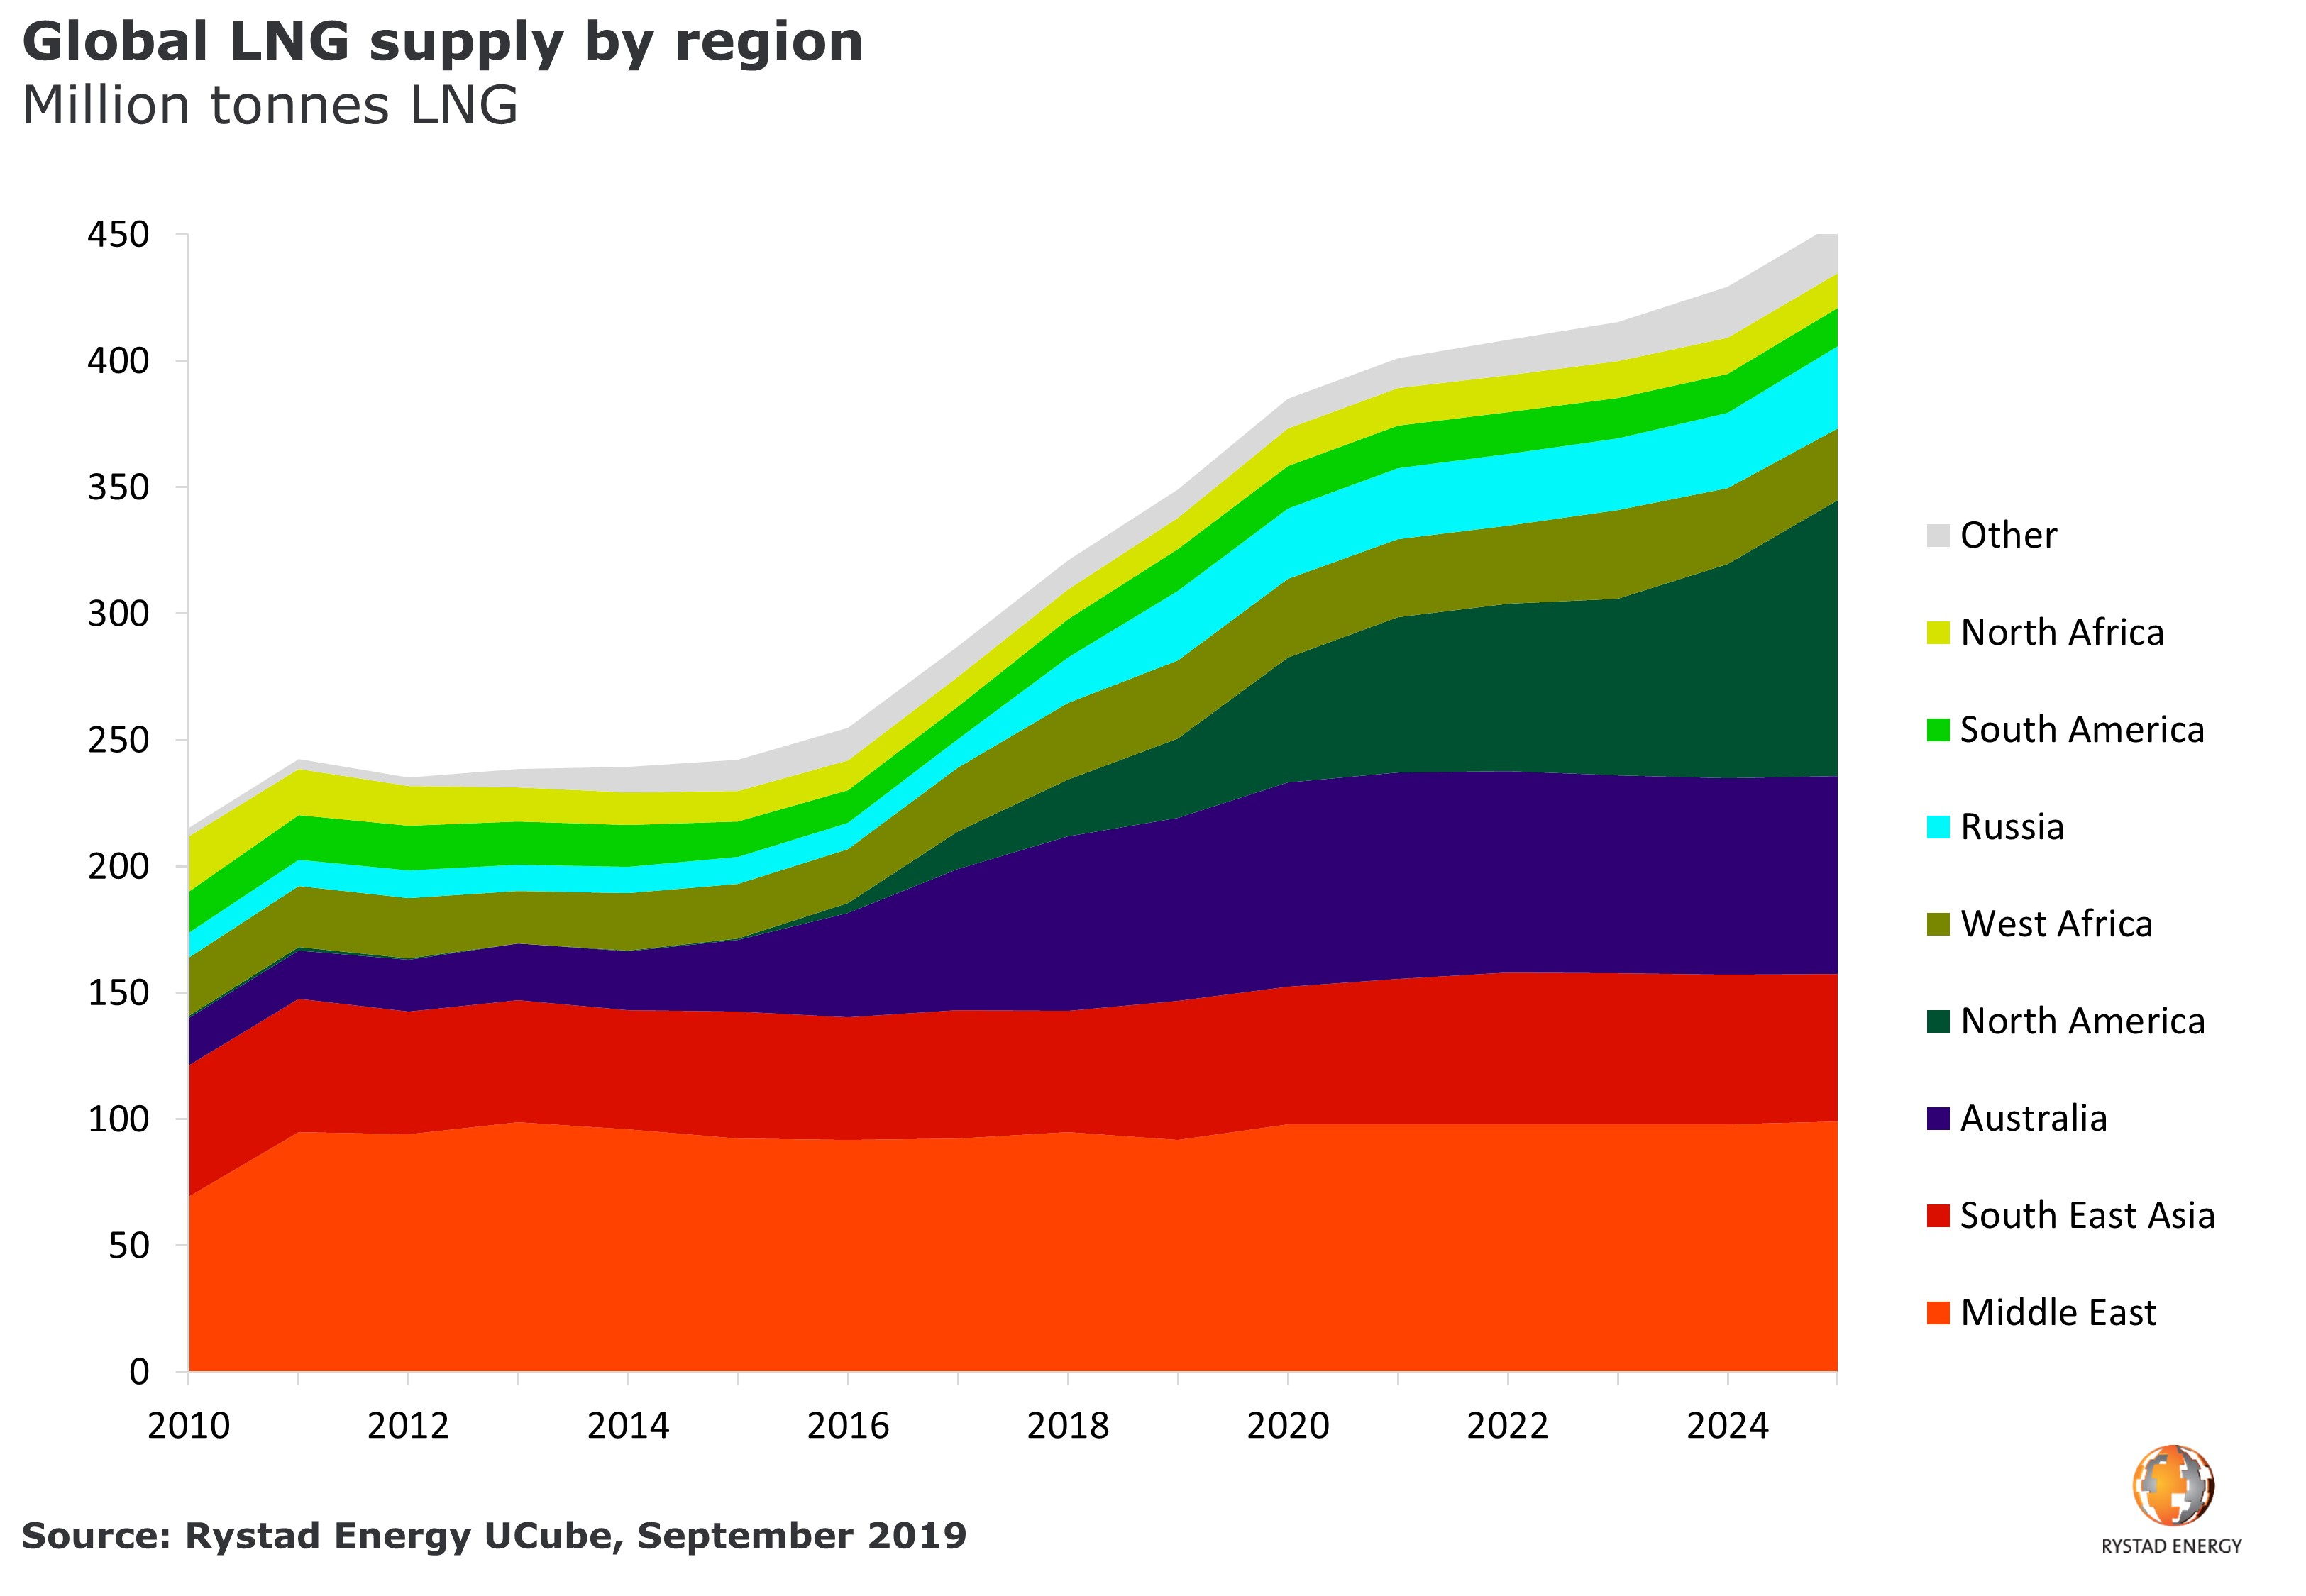 A chart showing the US liquids and gas supply from shale formations and spudded shale wells from 2006 to 2012. Source: UCube from Rystad Energy, July 2019